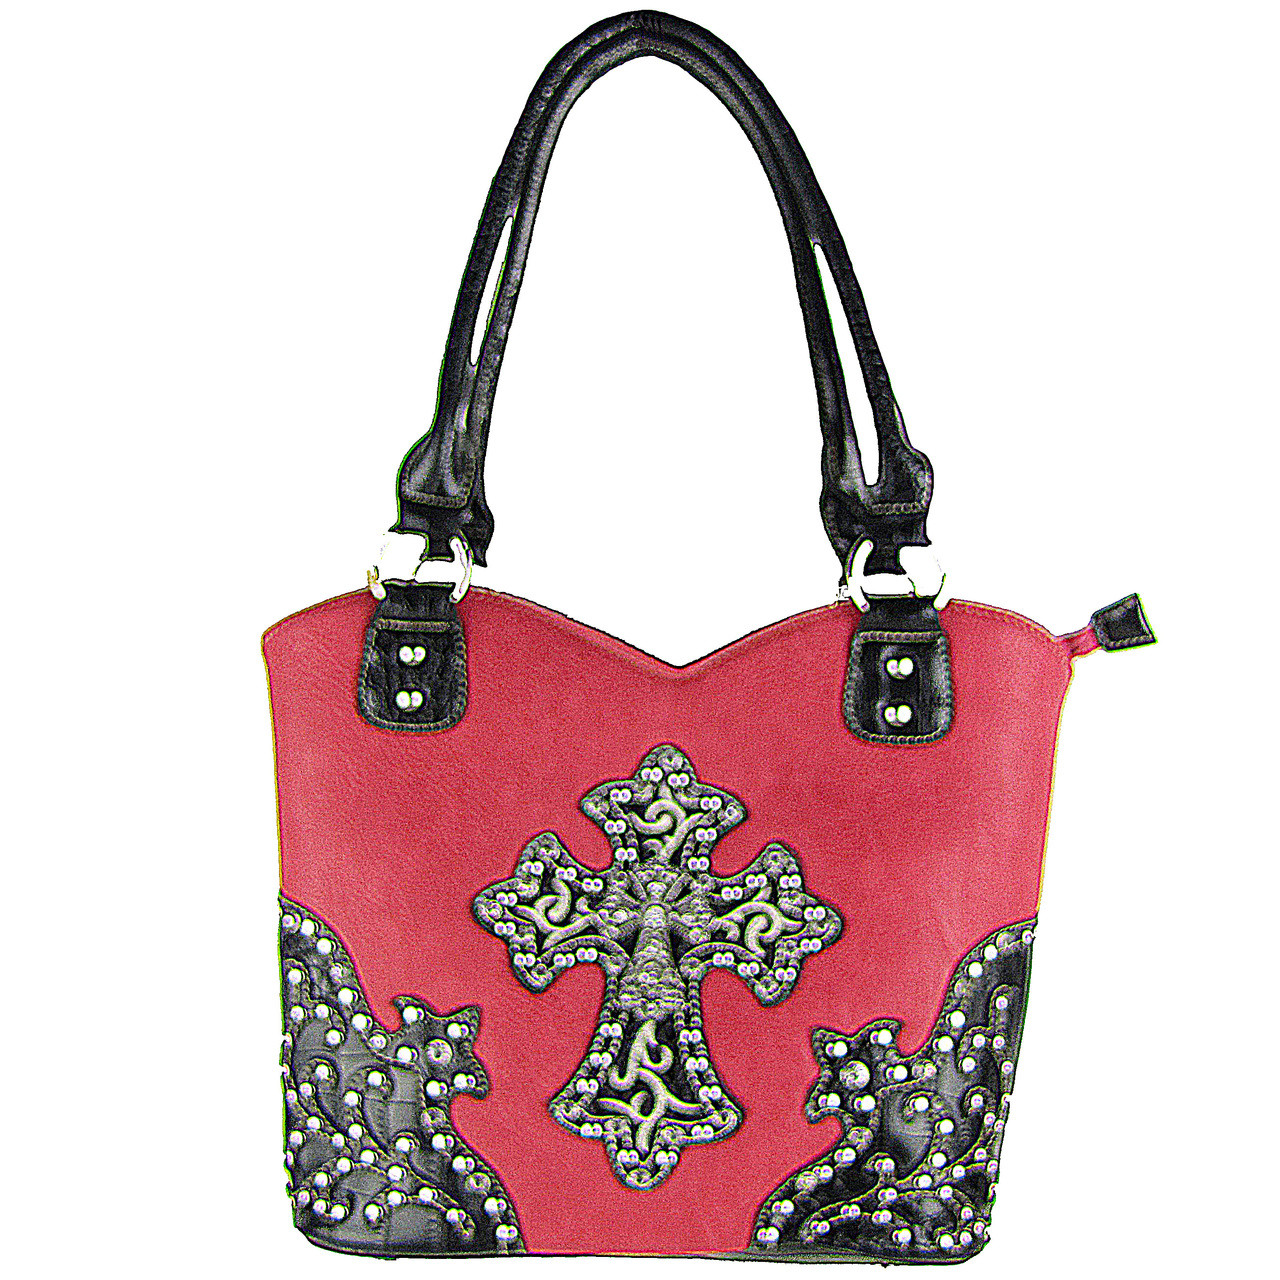 HOT PINK RHINESTONE STUDDED CROSS LOOK SHOULDER HANDBAG HB1-HH403-30HPK